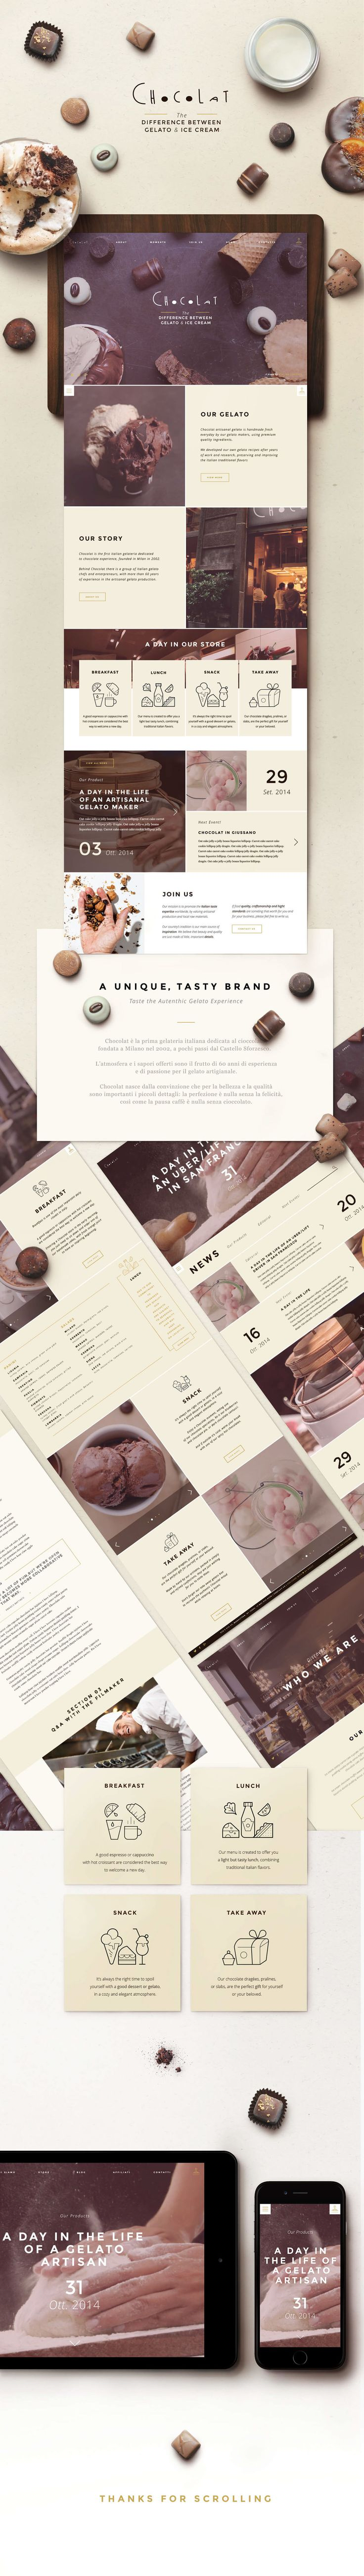 Chocolat by @nois3 on Behance